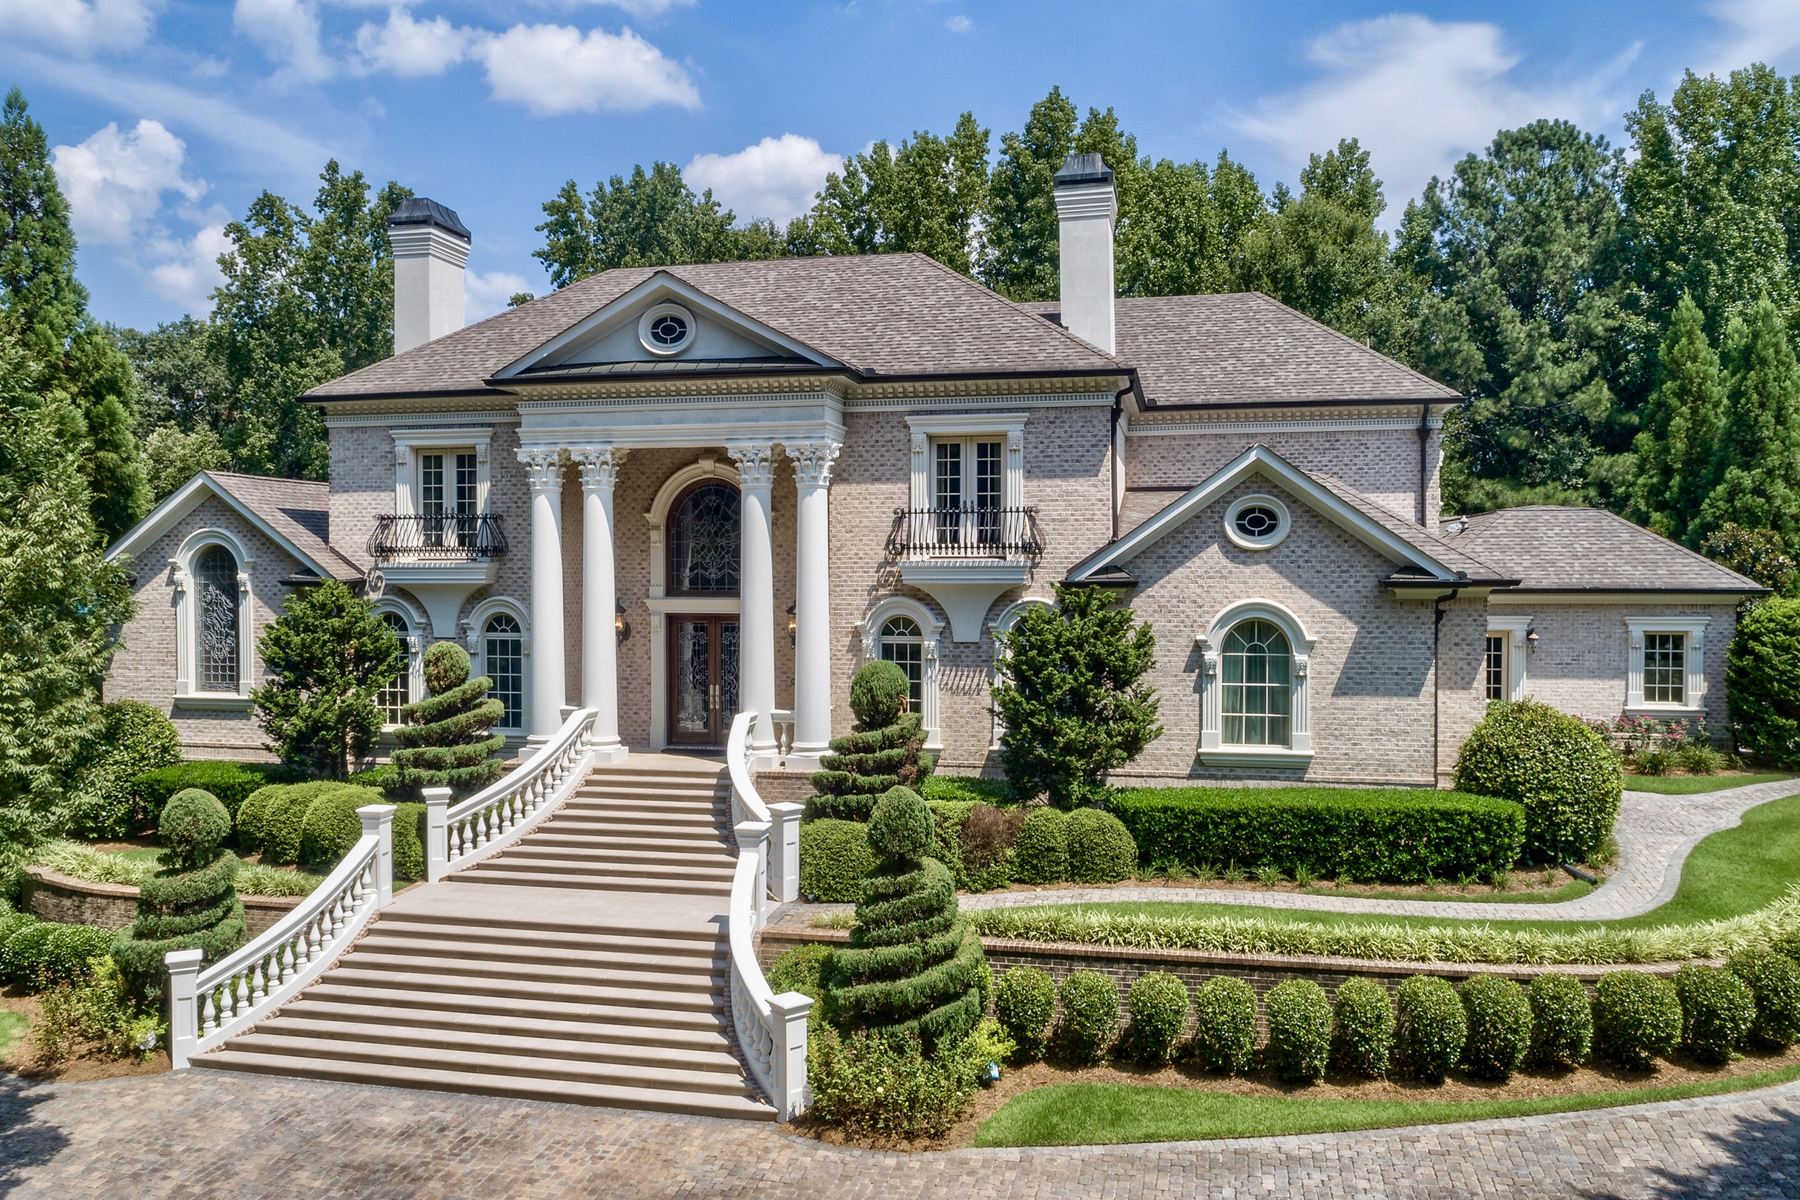 Villa per Vendita alle ore Executive Home With Chattahoochee River Frontage 131 Royal Dornoch Drive Johns Creek, Georgia 30097 Stati Uniti